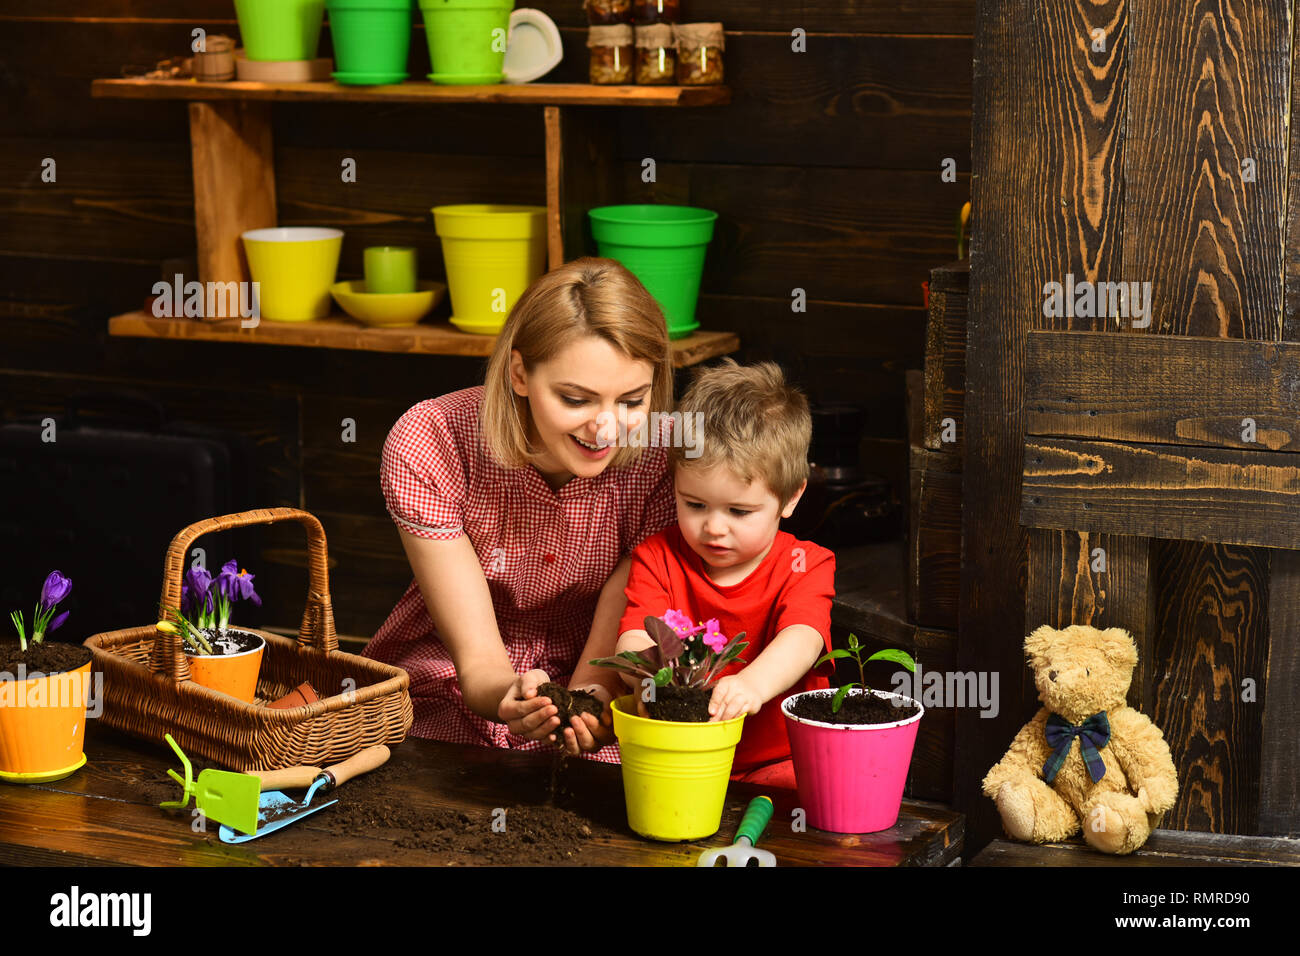 Decor concept. Little boy and woman planting flower in new pot decor. Natural eco decor. Home decor - Stock Image